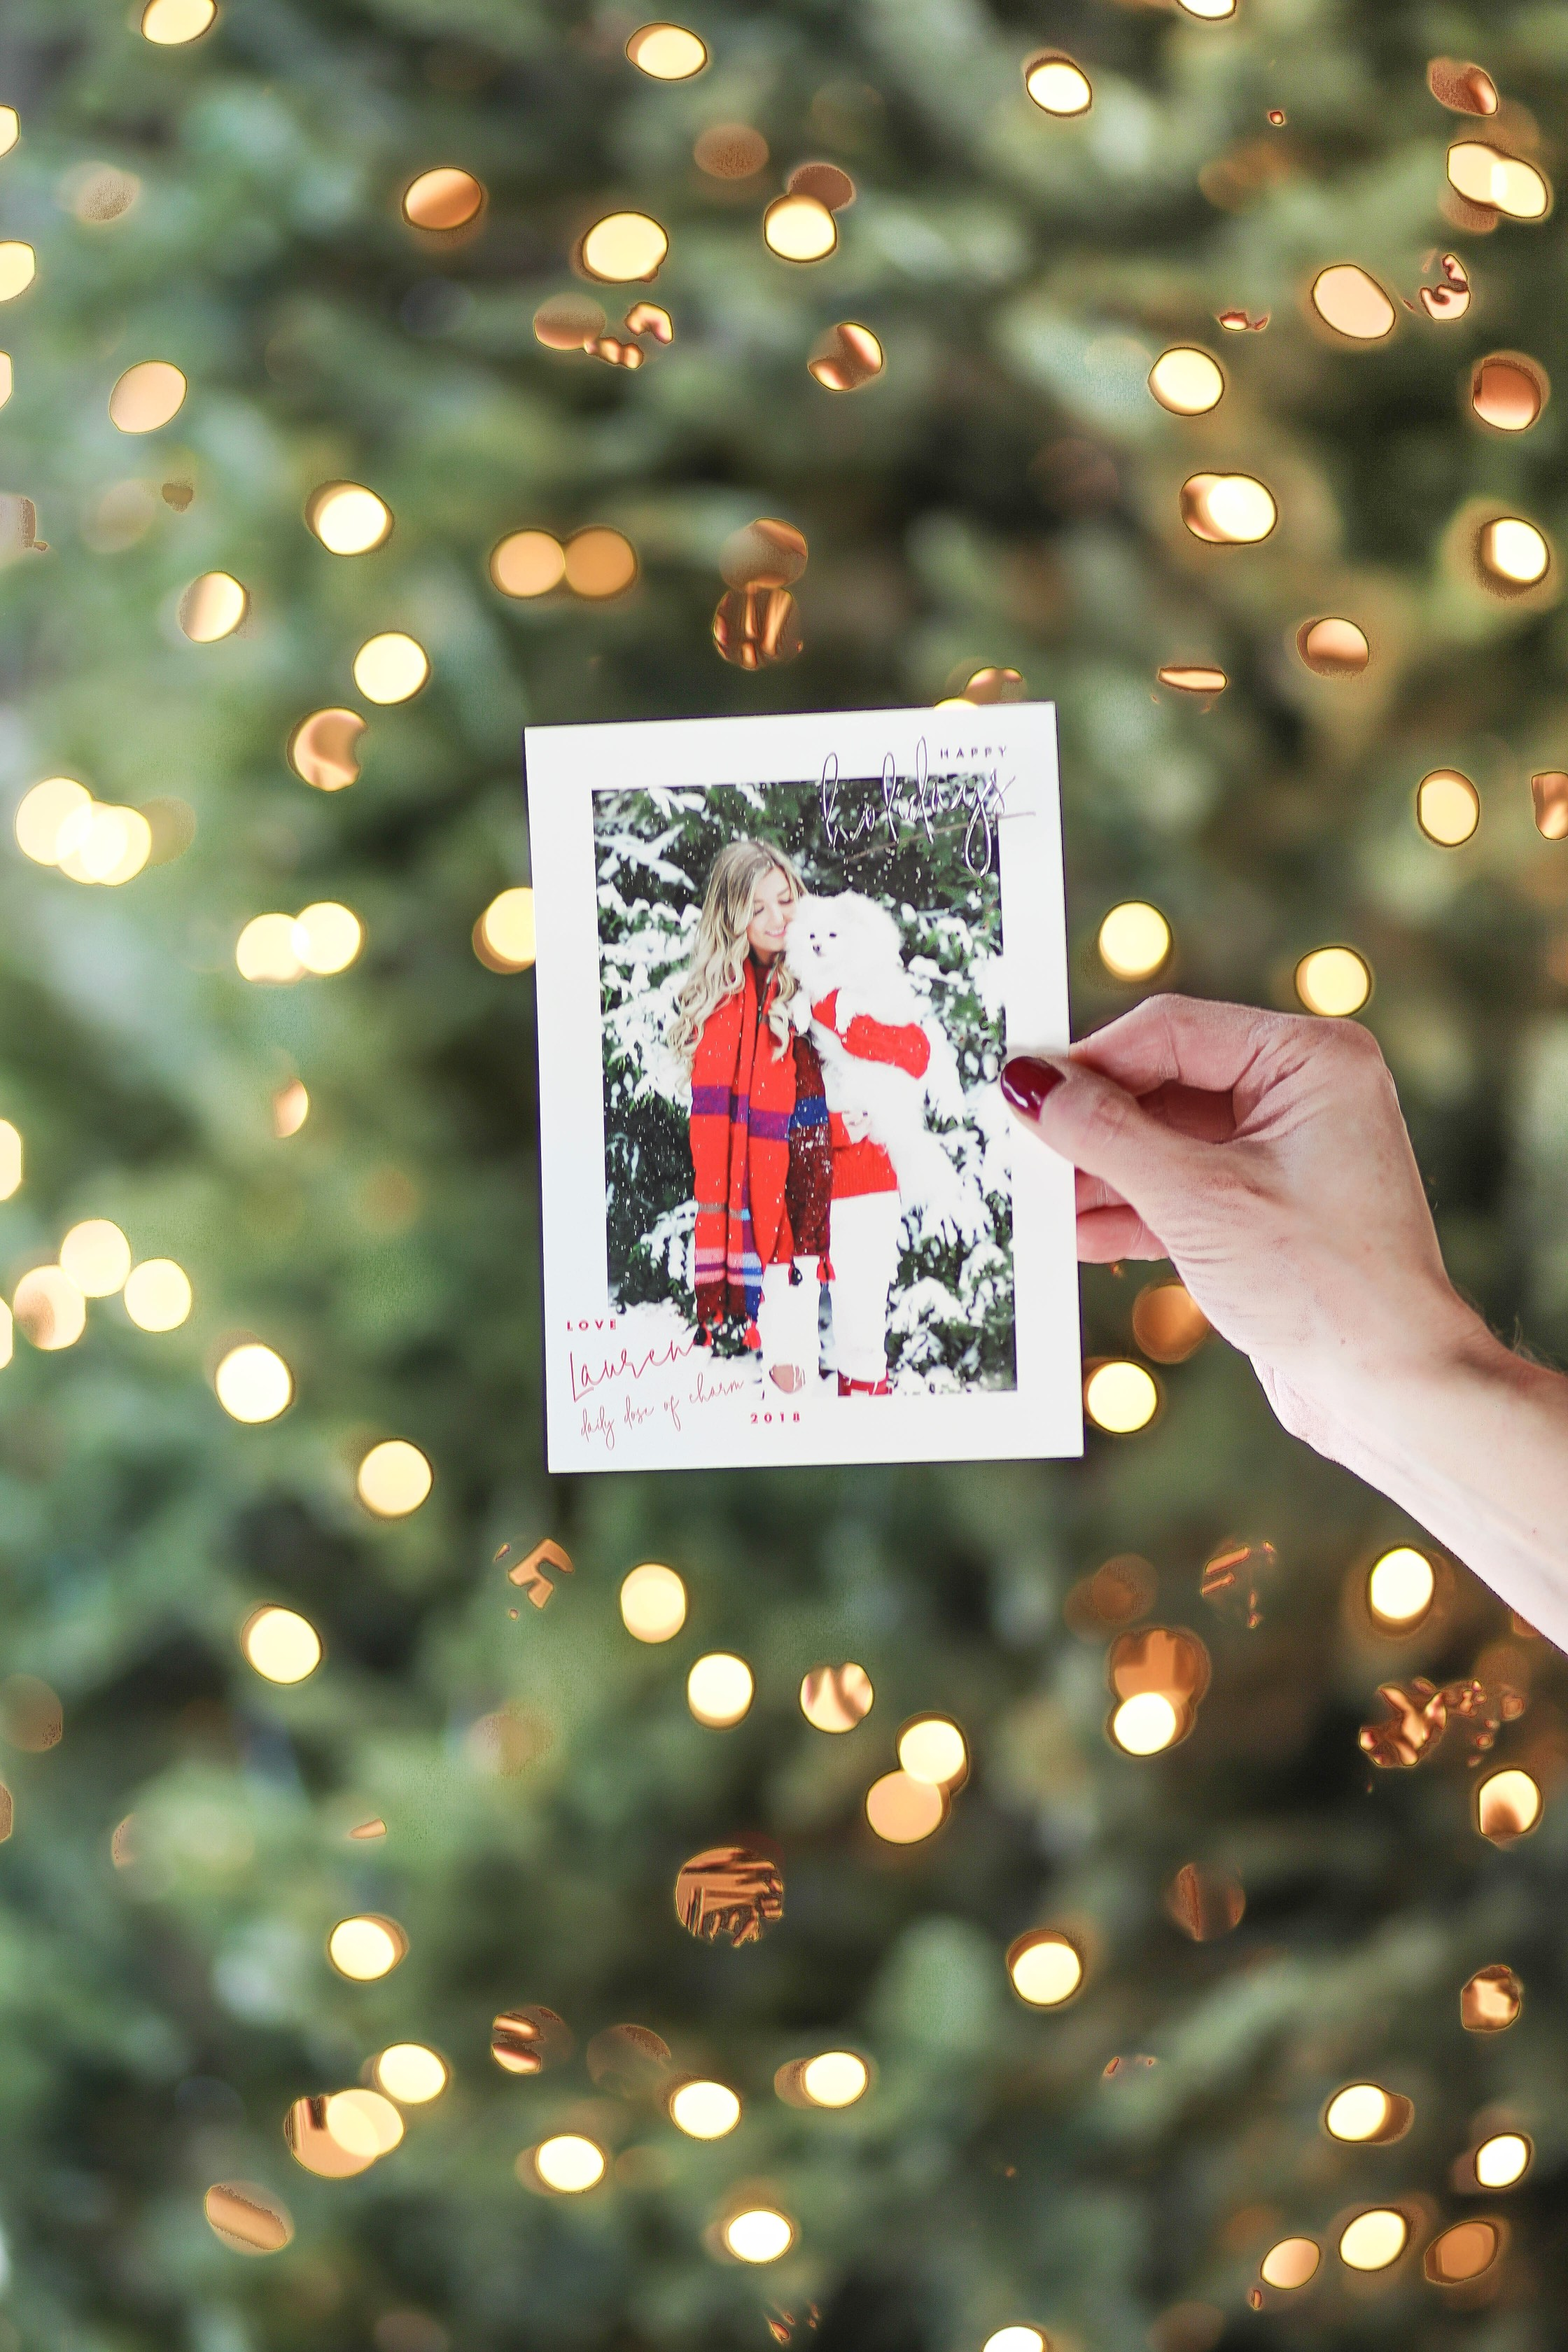 Christmas photos from Minted! The cutest holiday photos with my white pomeranian and German shephard! Dog holiday pictures are so cute! I am wearing this cute cable knit red sweater and beanie. All details on fashion blog daily dose of charm by lauren lindmark